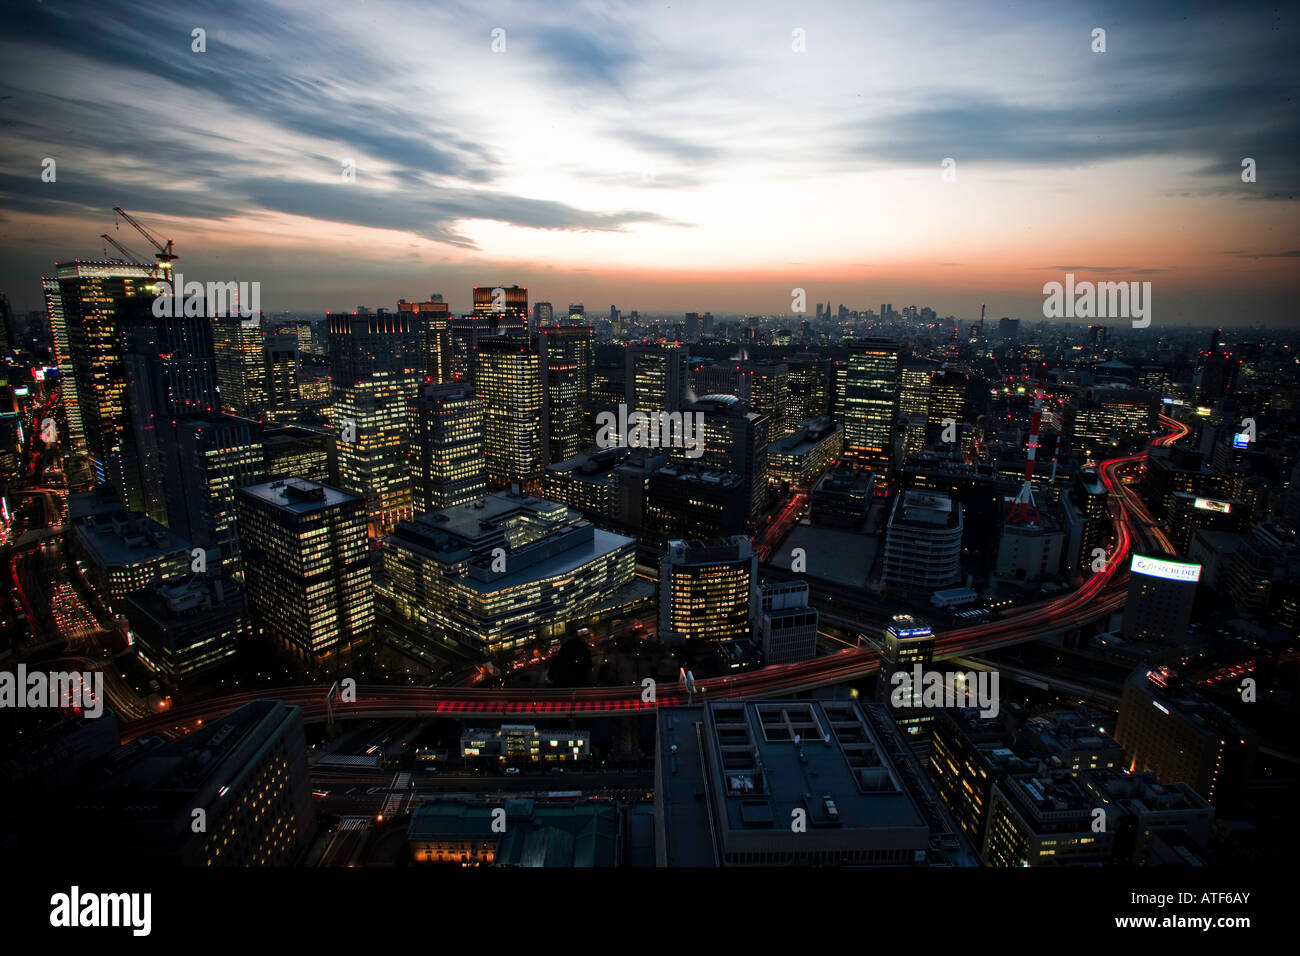 Night time cityscape of Tokyo Central Station area - Stock Image